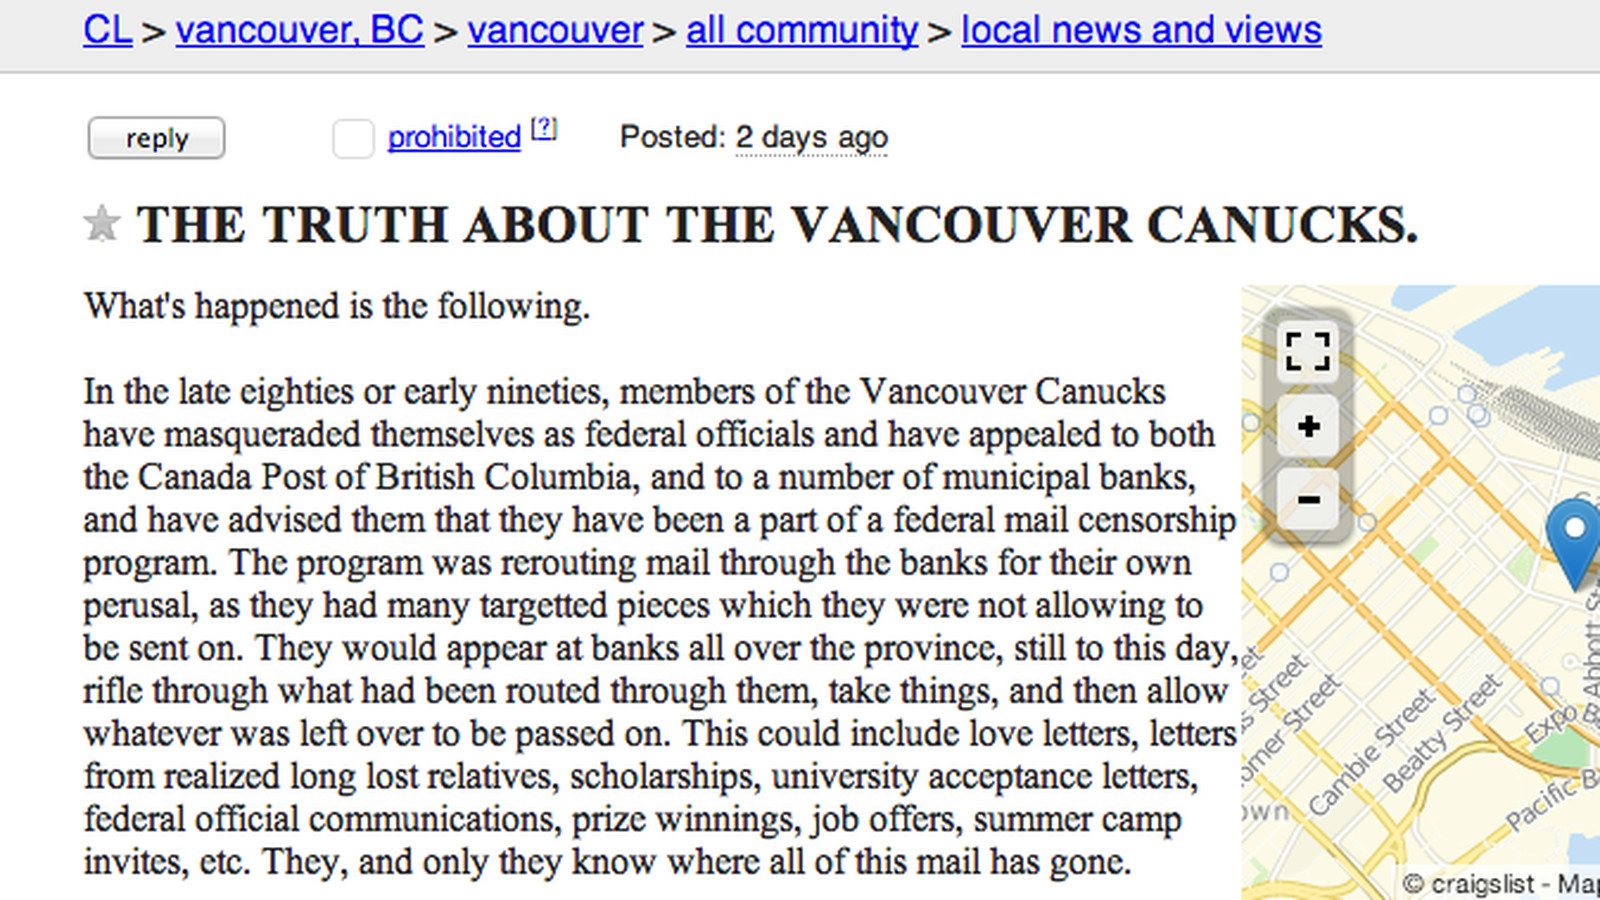 Craigslist Post Says Canucks Are Reading Your Mail And Poisoning Your Water Sbnation Com You can buy and sell almost anything (within reason), not to mention the personals section. sb nation